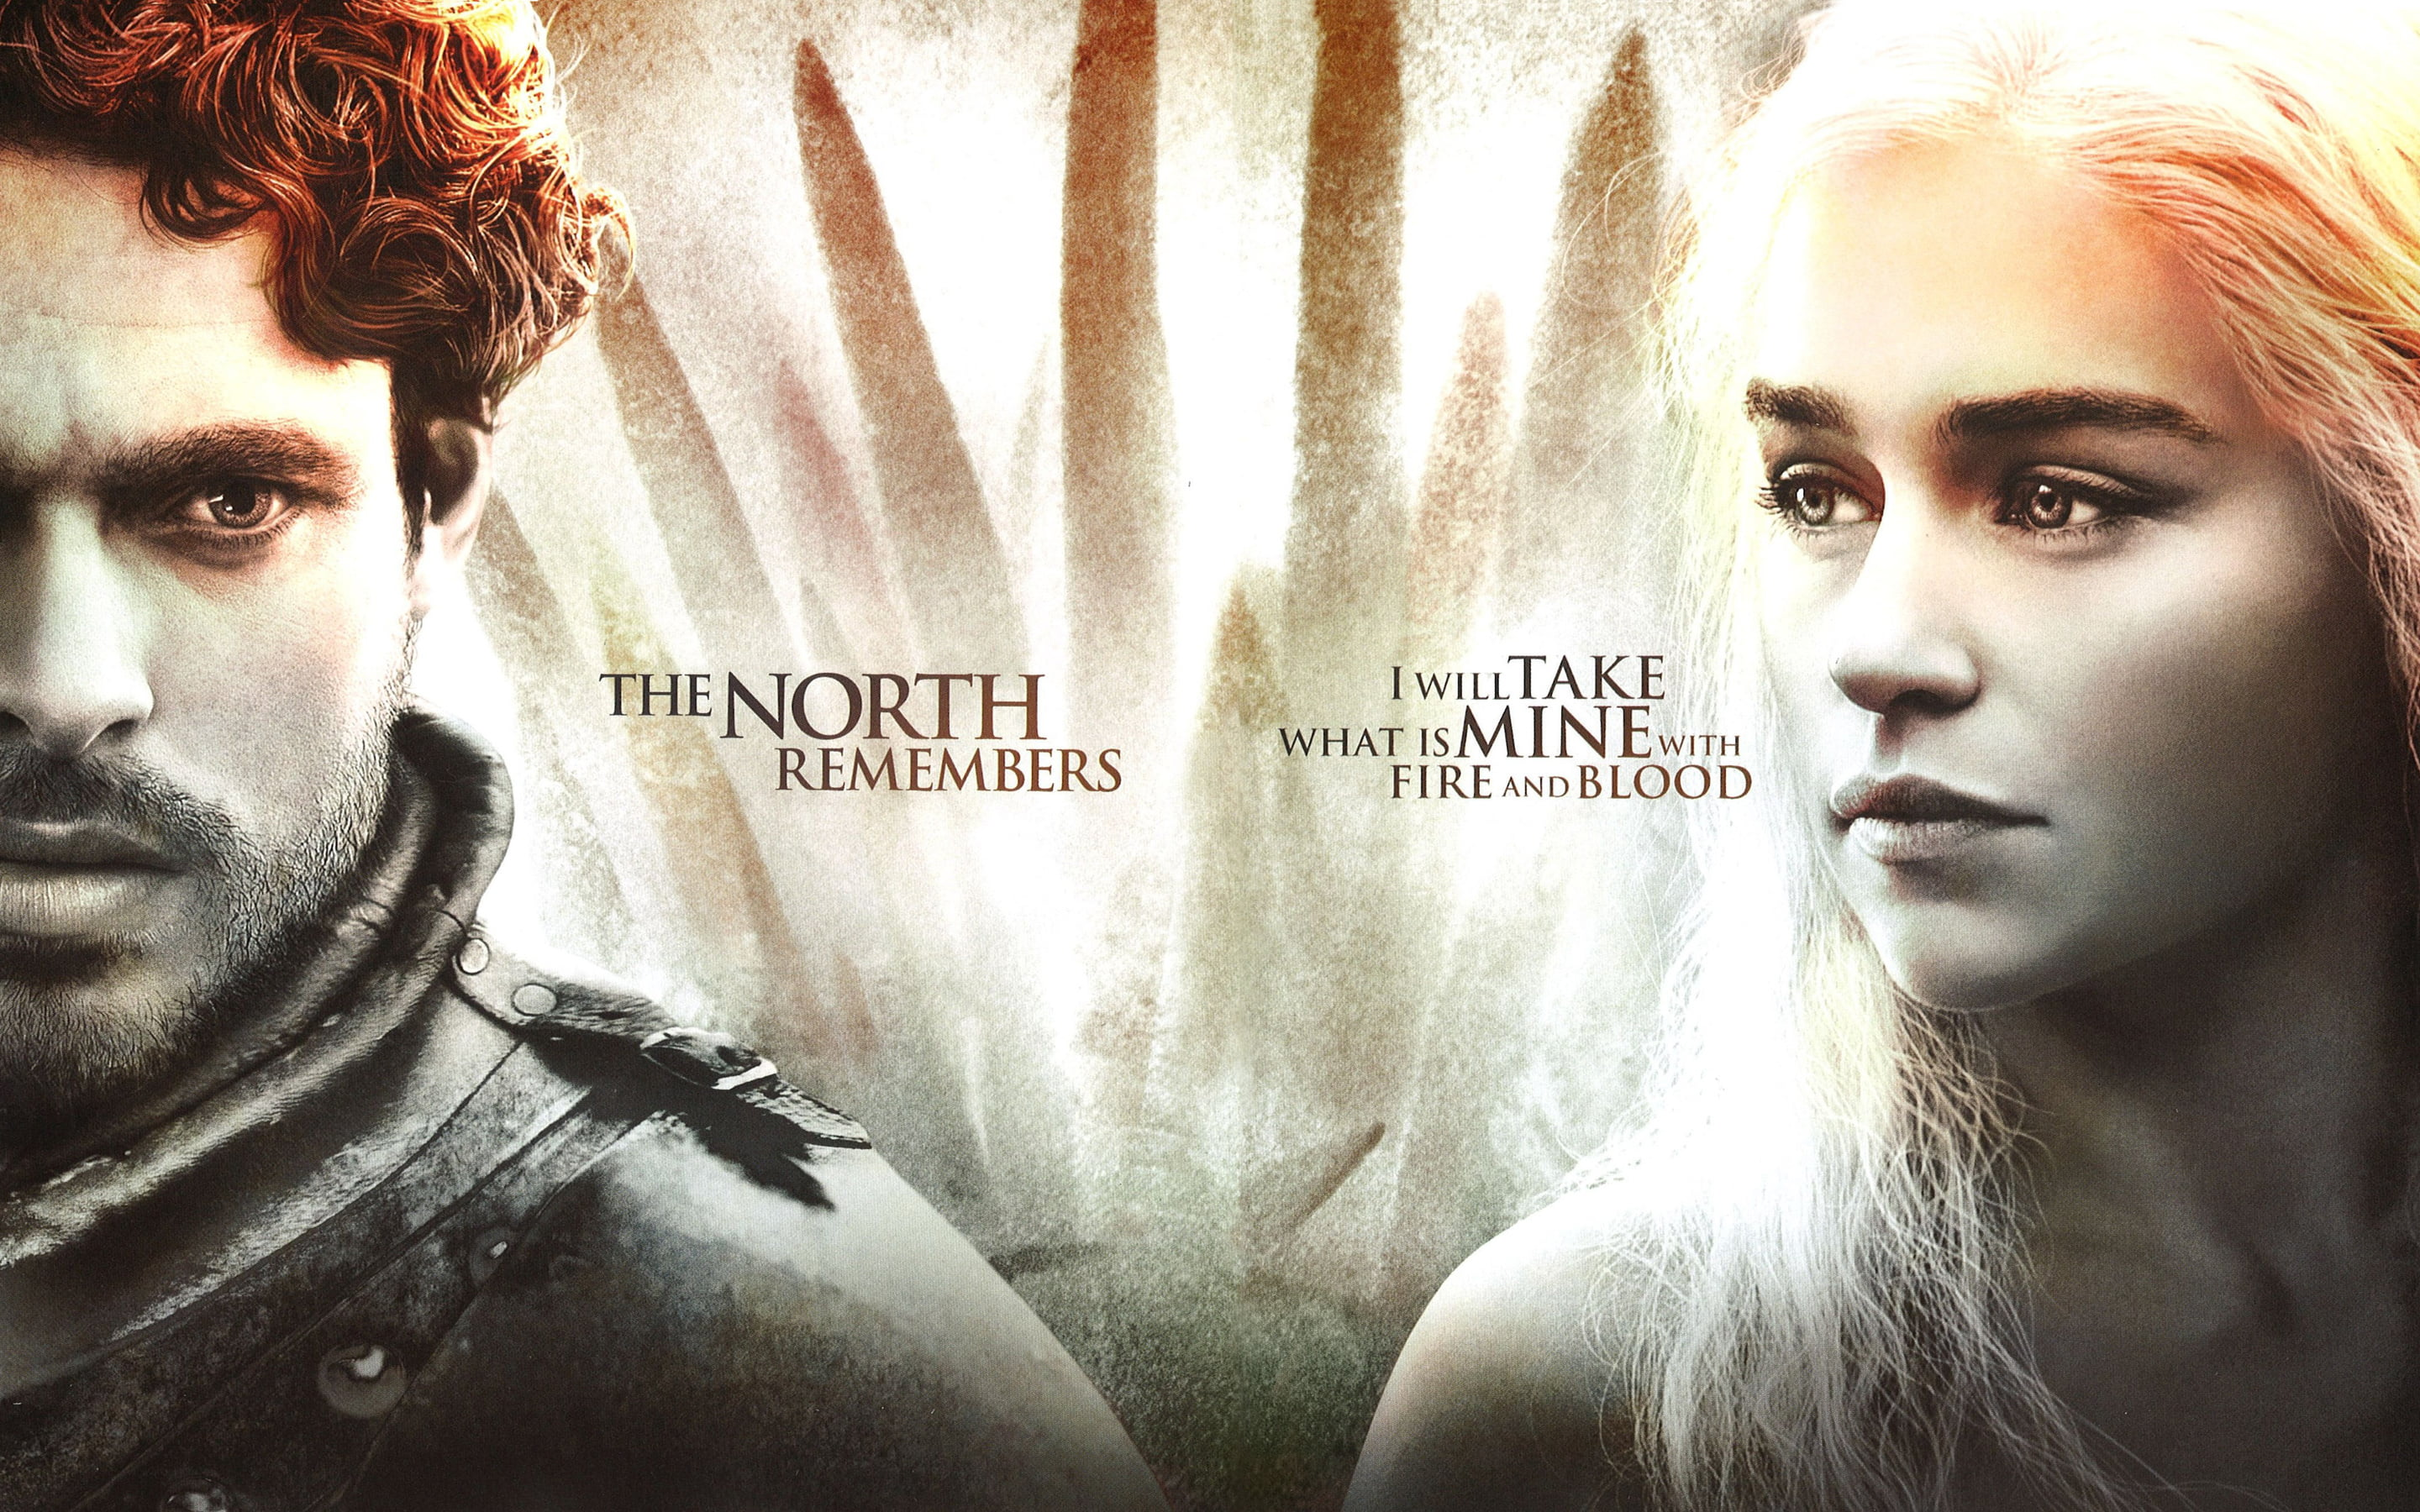 The North Remembers game of thrones HD wallpaper Wallpaper Flare 2880x1800